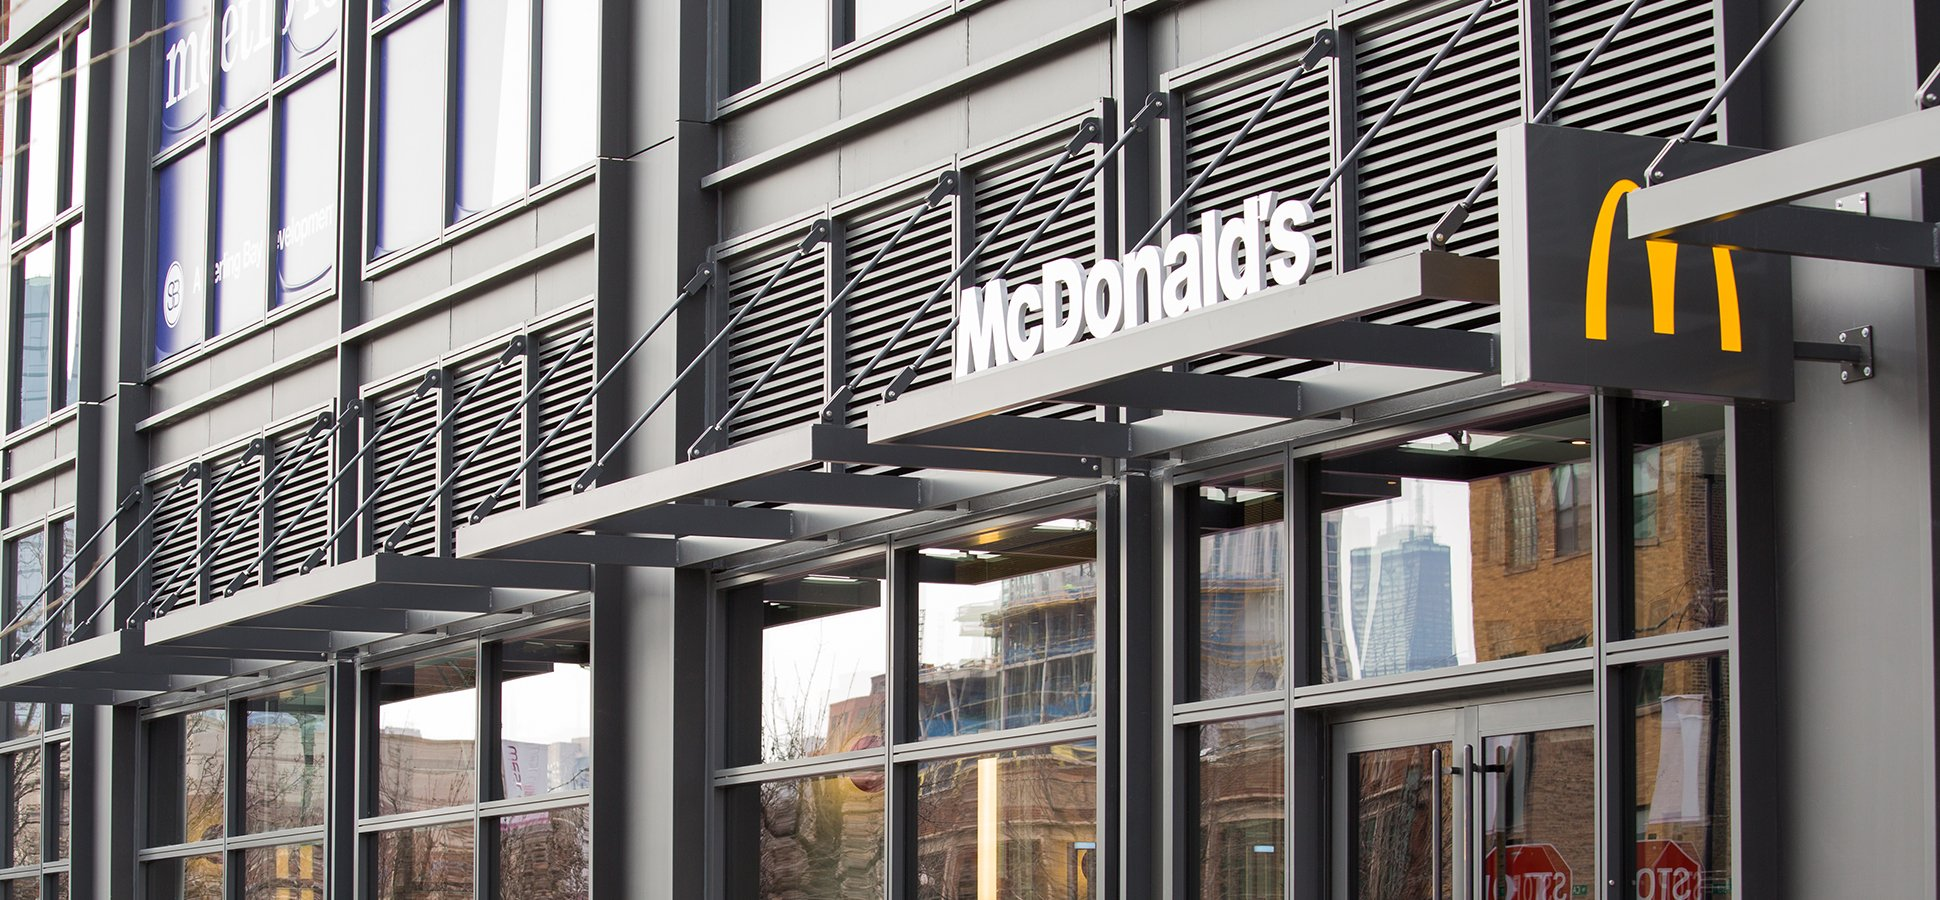 McDonald's Is Opening an Amazing Restaurant That's Unlike Like Any McDonald's You've Ever Seen